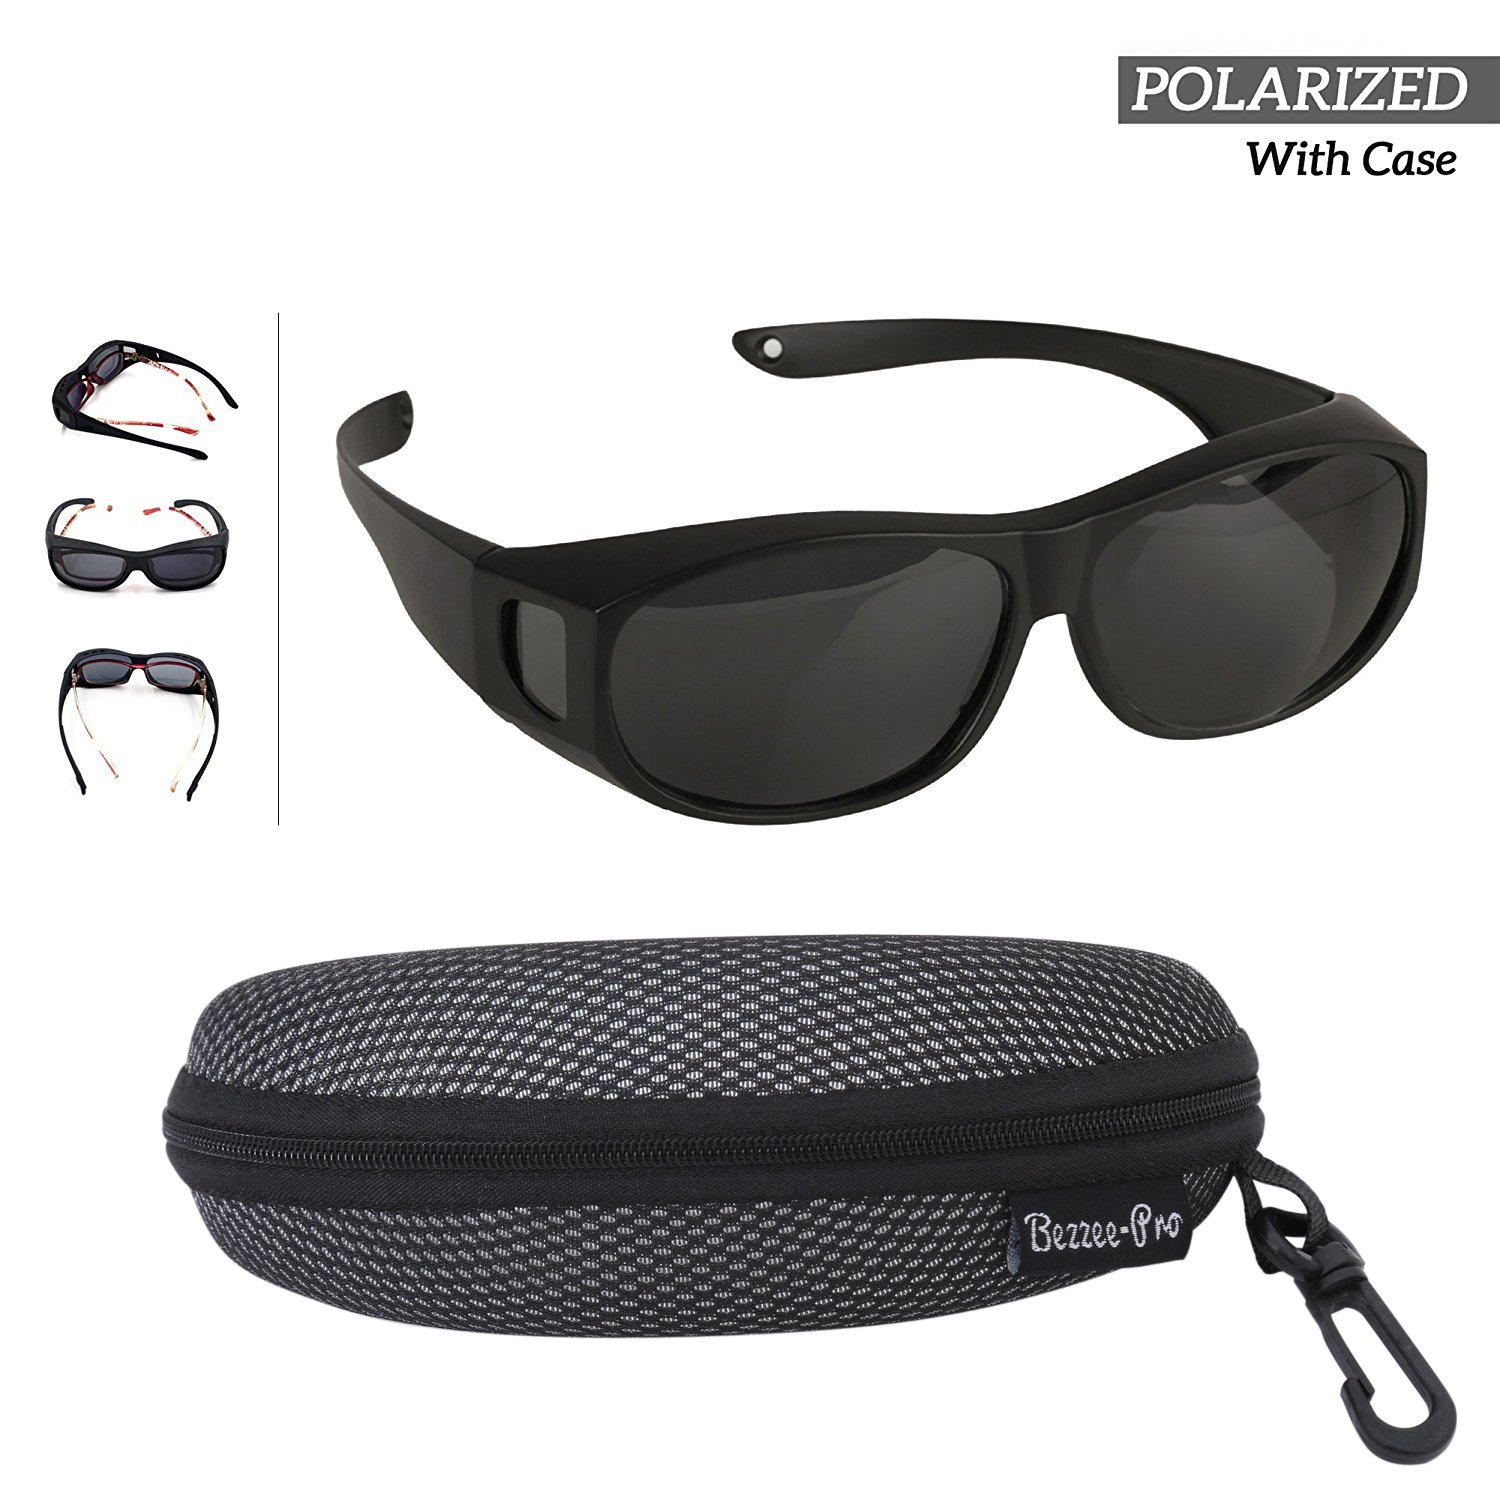 Fit Over Polarized Sunglasses For Men Women - Wear Over your Regular Glasses  and Prescription Glasses - Reduces Glare Lightweight   Comfortable - Black  Matt 74a94c5c4a